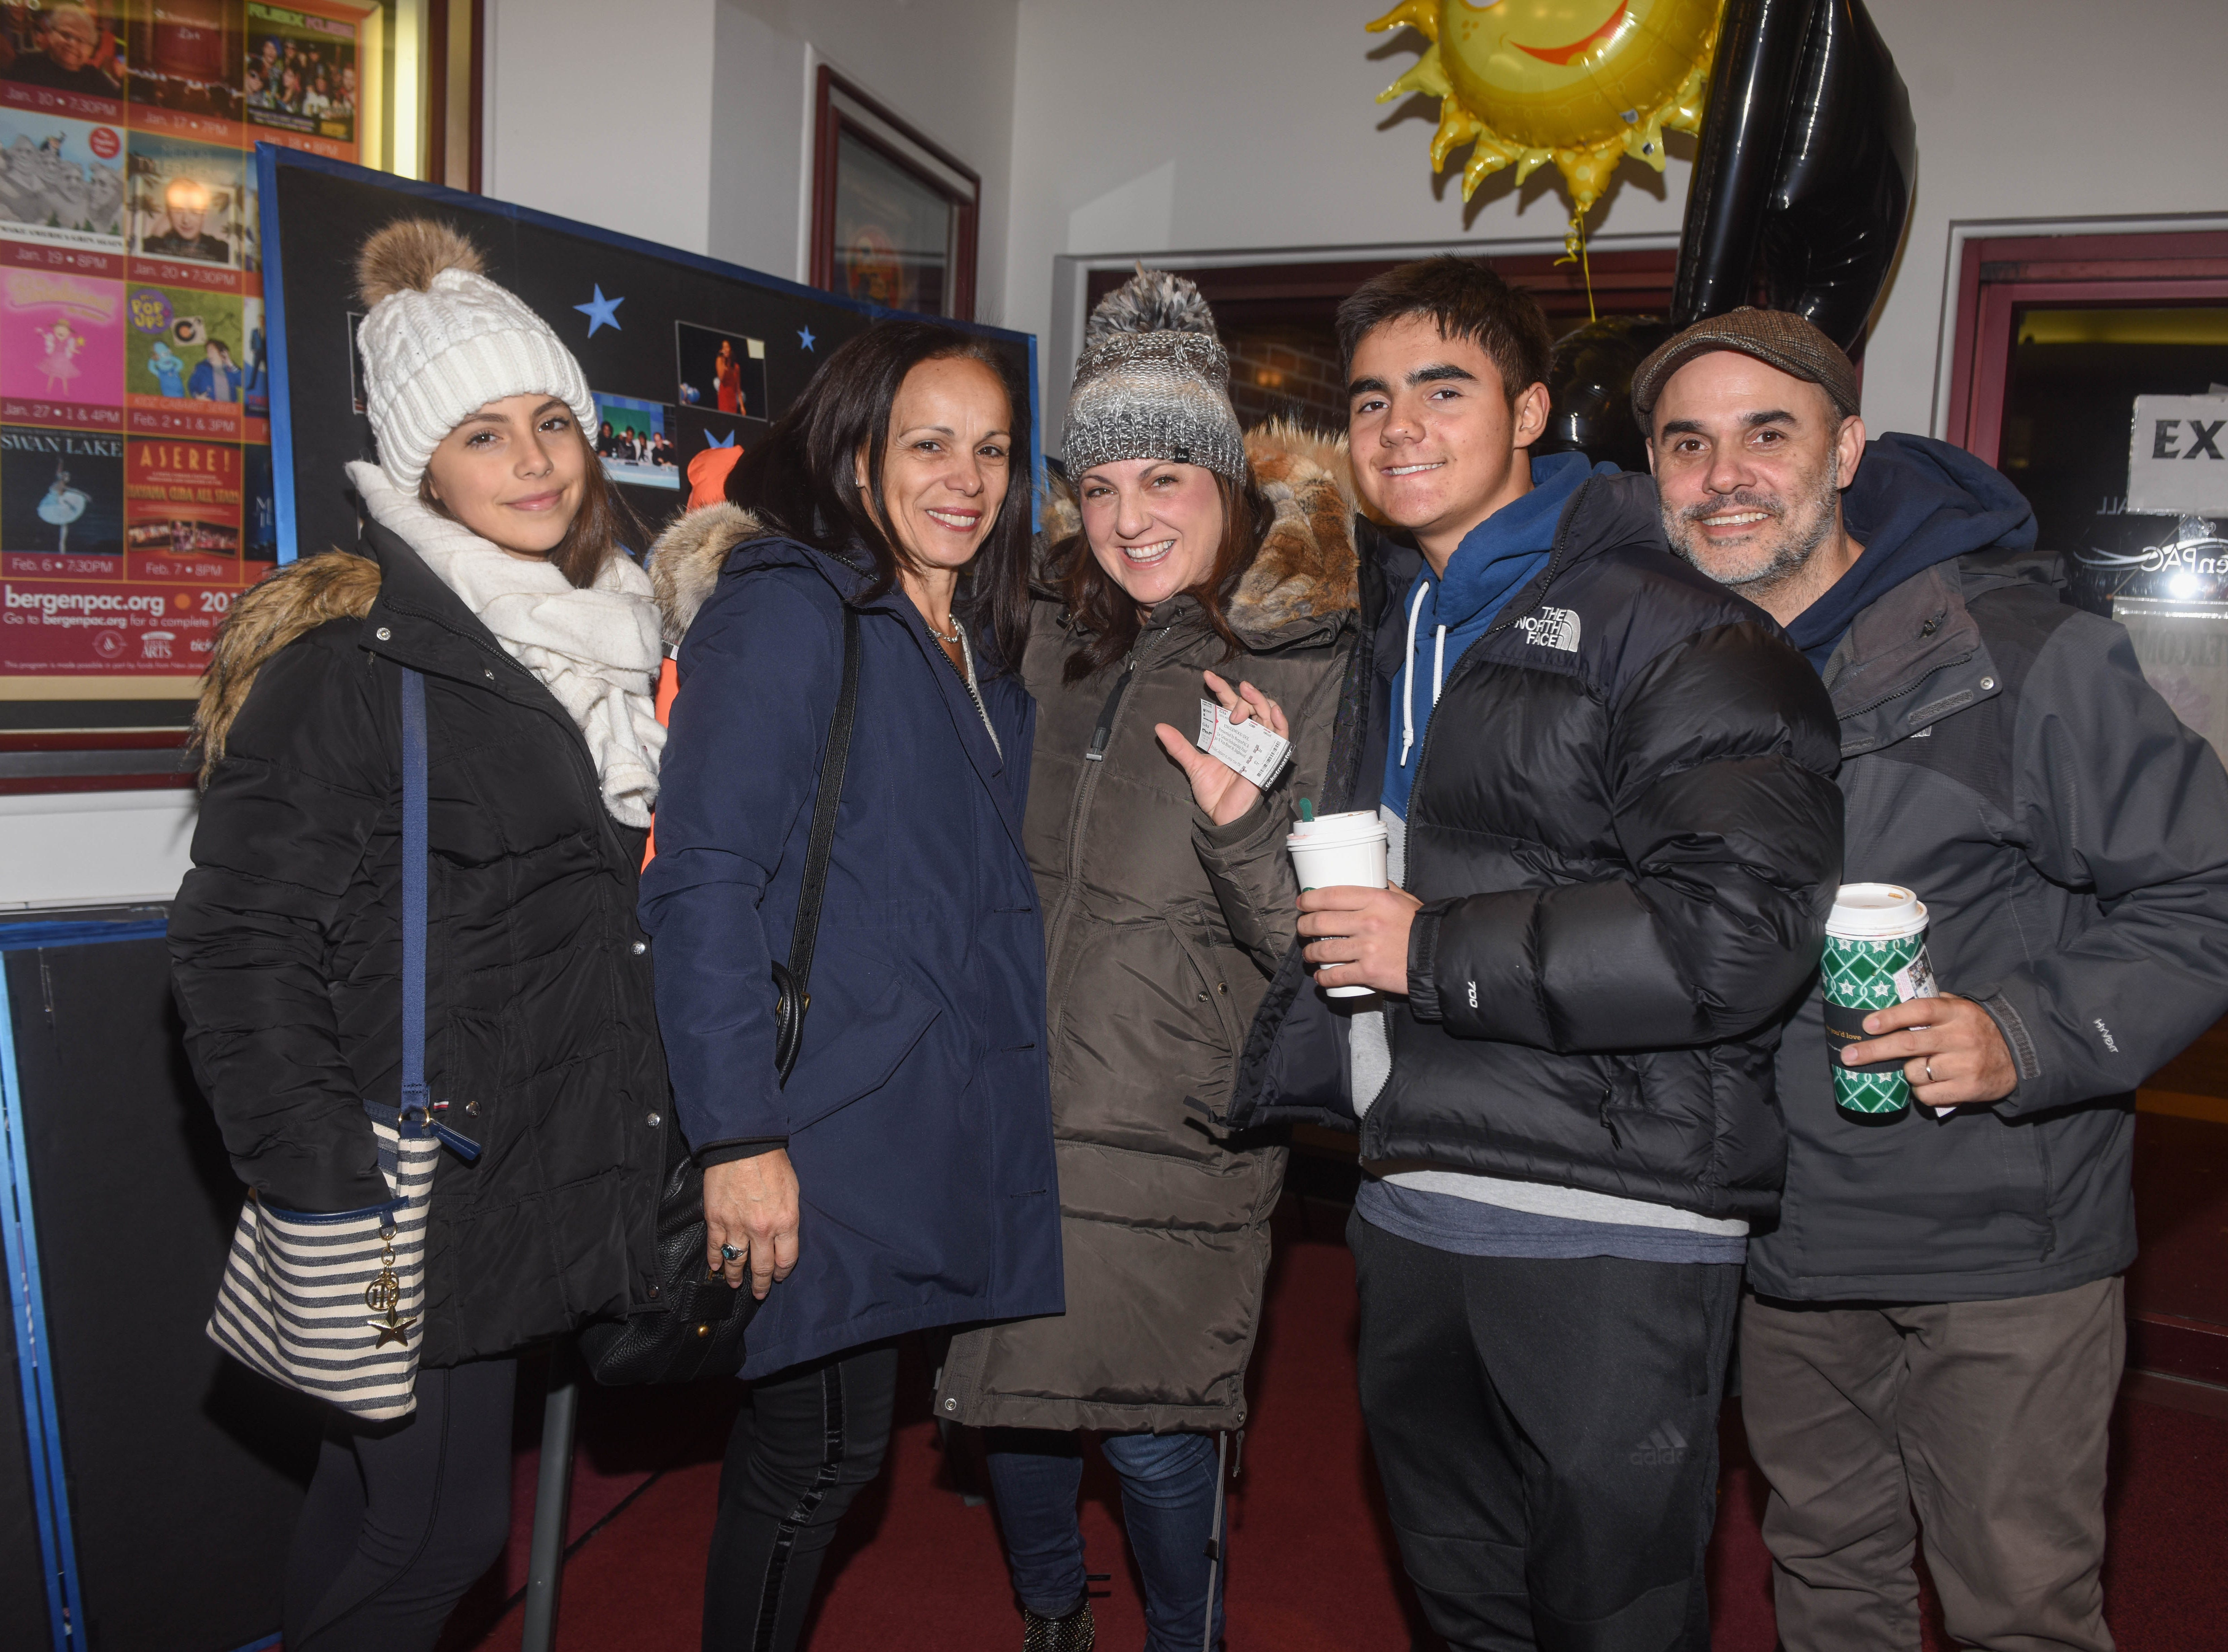 Renata Burnett, Helena Burnett, Pam Graf, Gerry Graf and Gus Graf. The 2019 Englewood Idol was held at bergenPAC theater. The singing competition is open to any high school student who currently lives or goes to school in Englewood, NJ. This years winner was Genesis Capellan. 01/11/2019